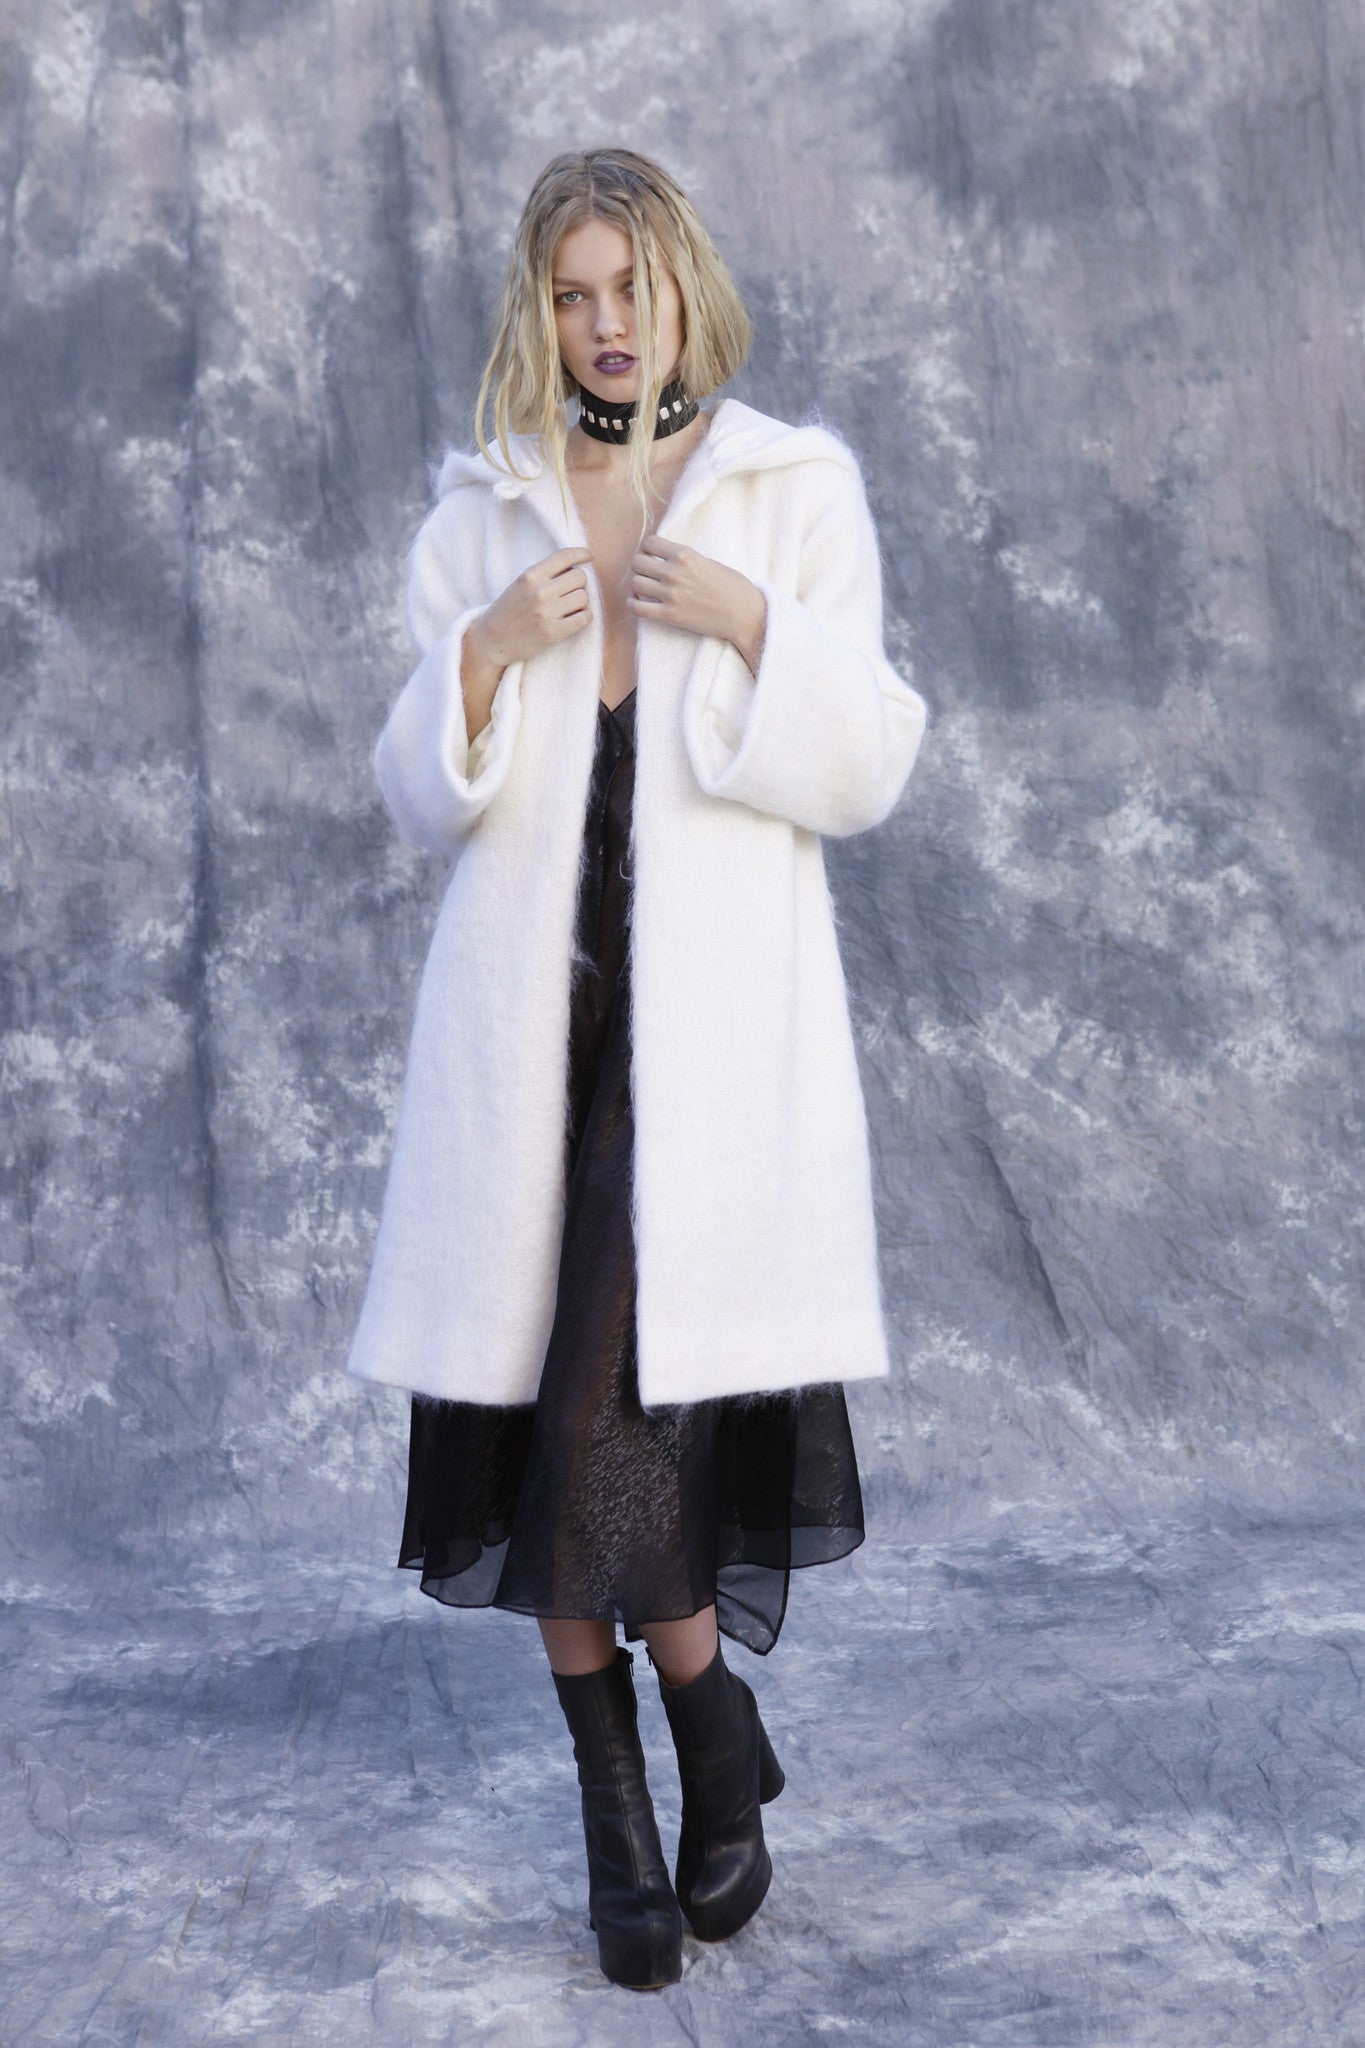 Maggie Laine IMG model Wendy Nichol New York Clothing Designer Handmade in NYC New York City SS17 Fashion Runway Show Signals to the Mothership Made to Order Custom Tailoring Made to Measure Puffy Oversized belted large pockets Silk lining Short Hooded White Cream Mohair Coat Wizard Goth